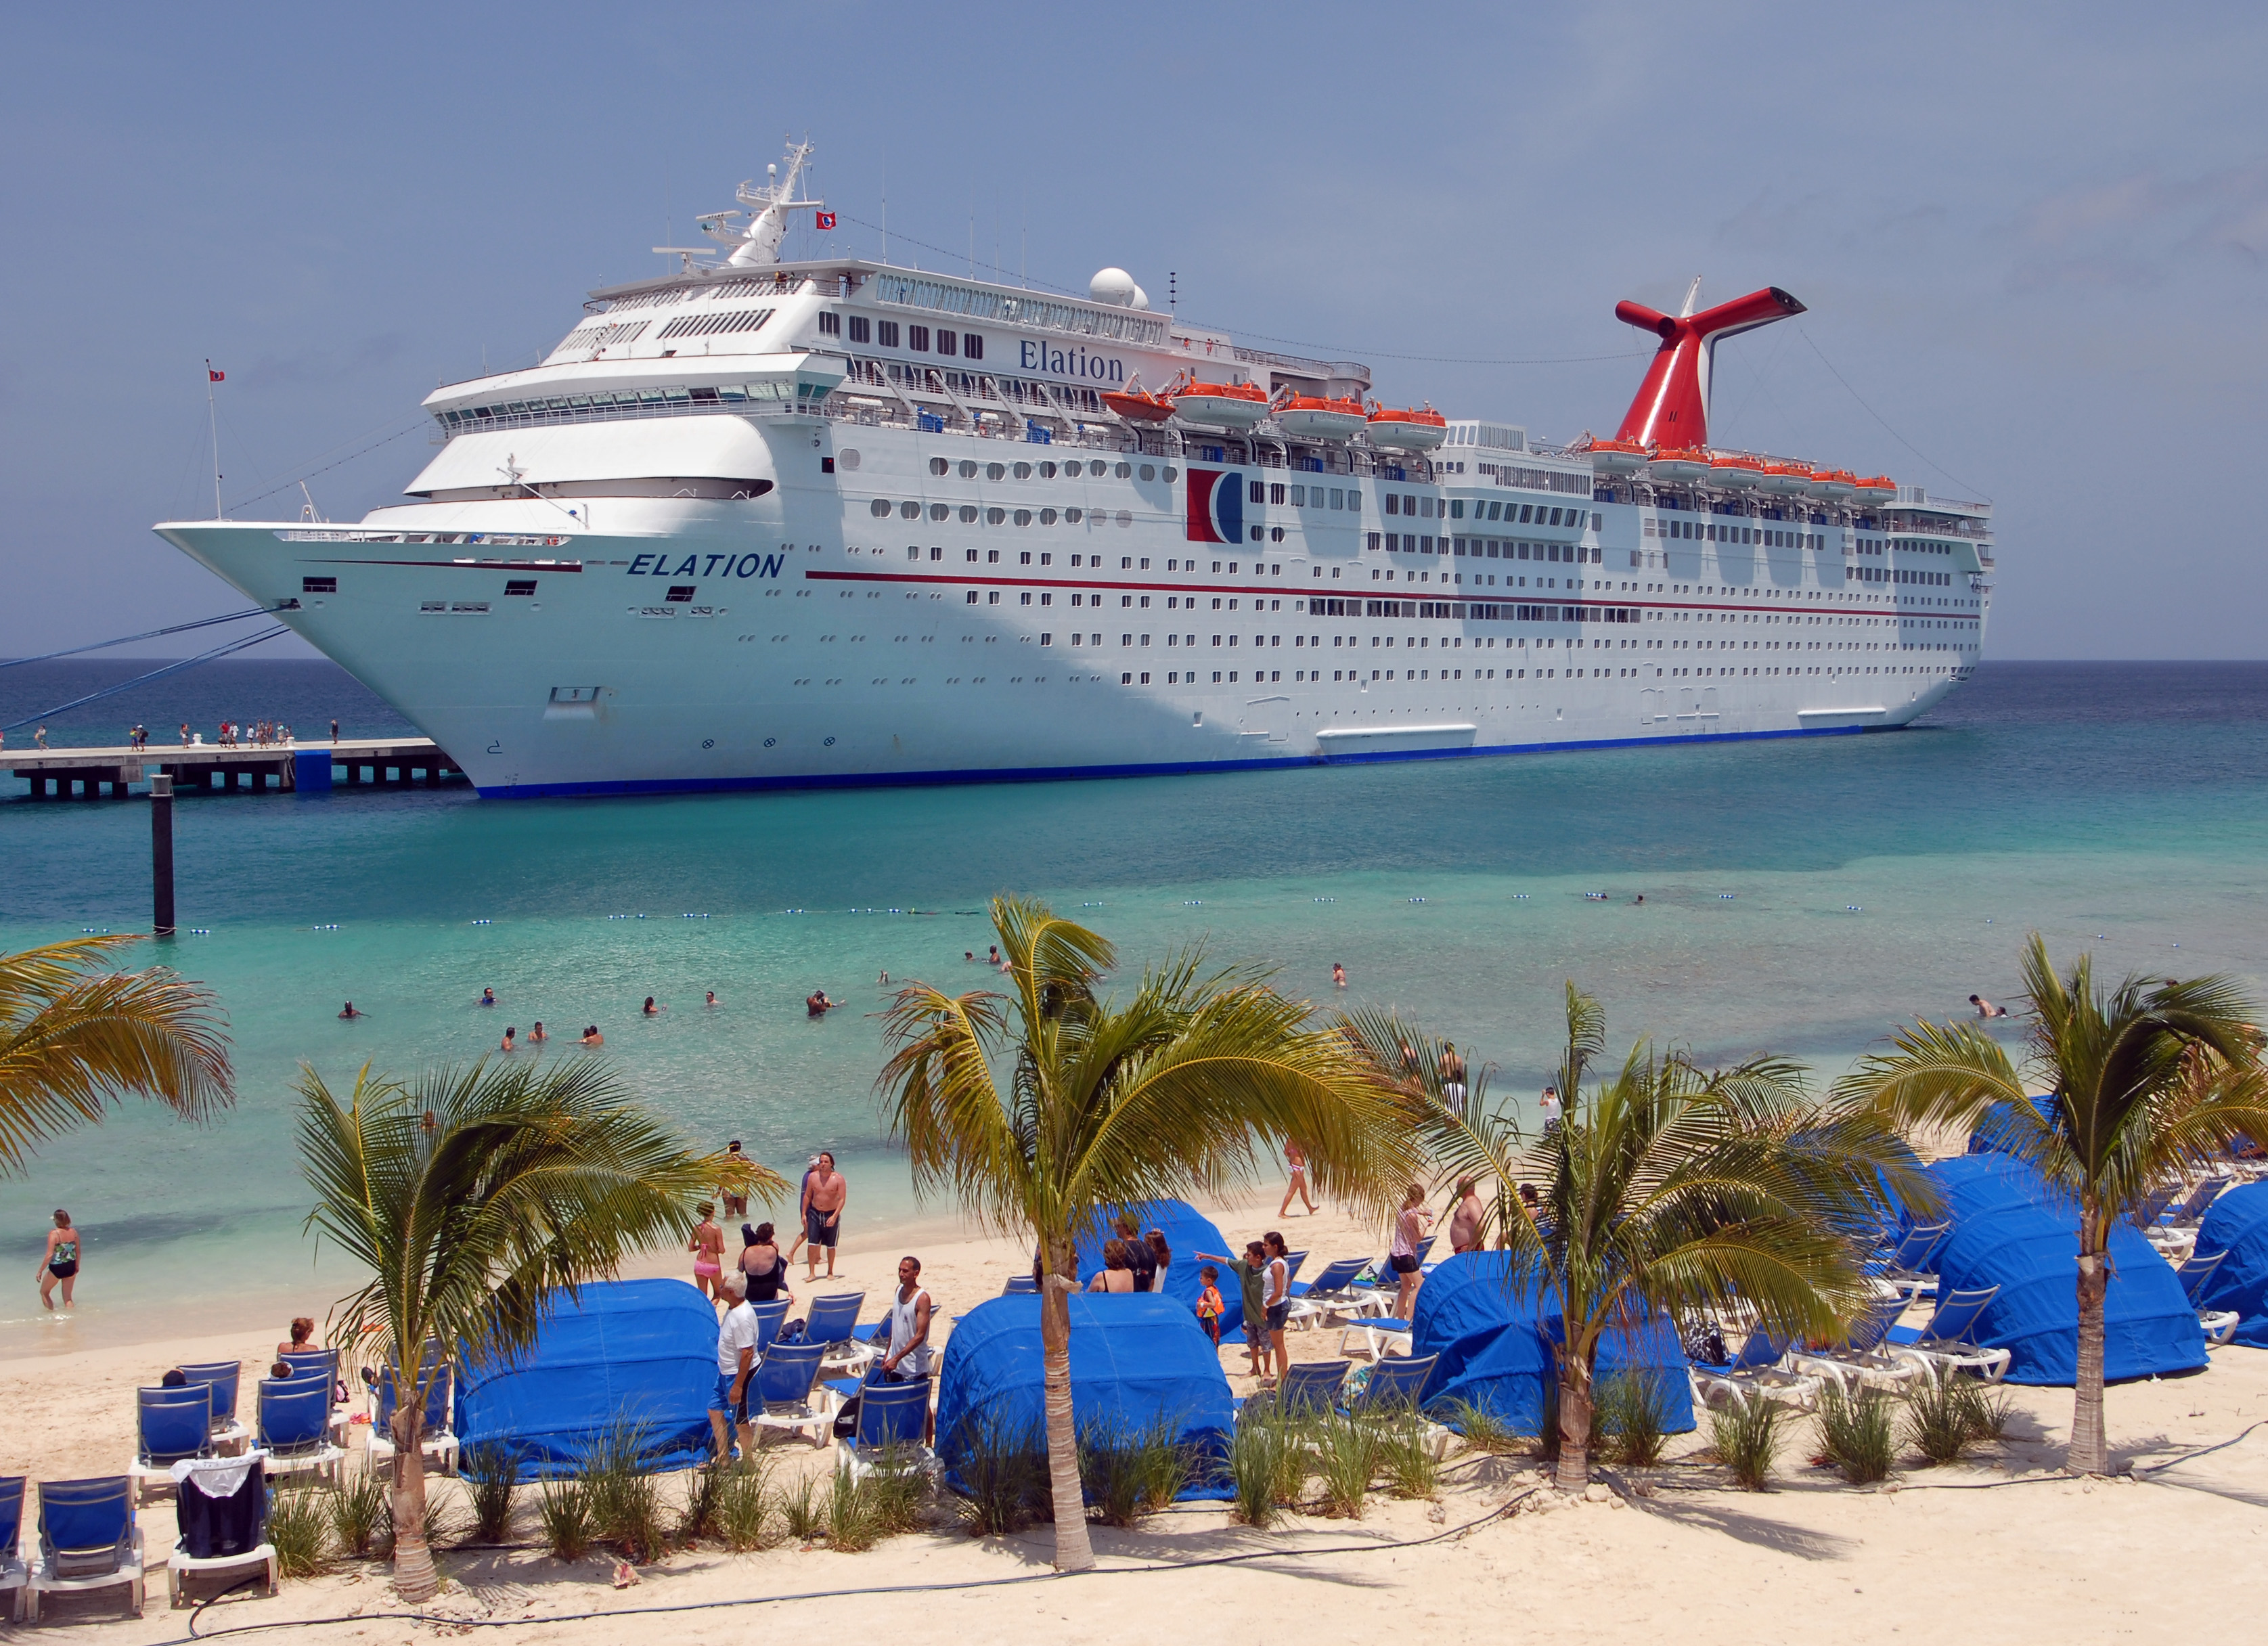 Carnival Glory Cruise Review by Jim